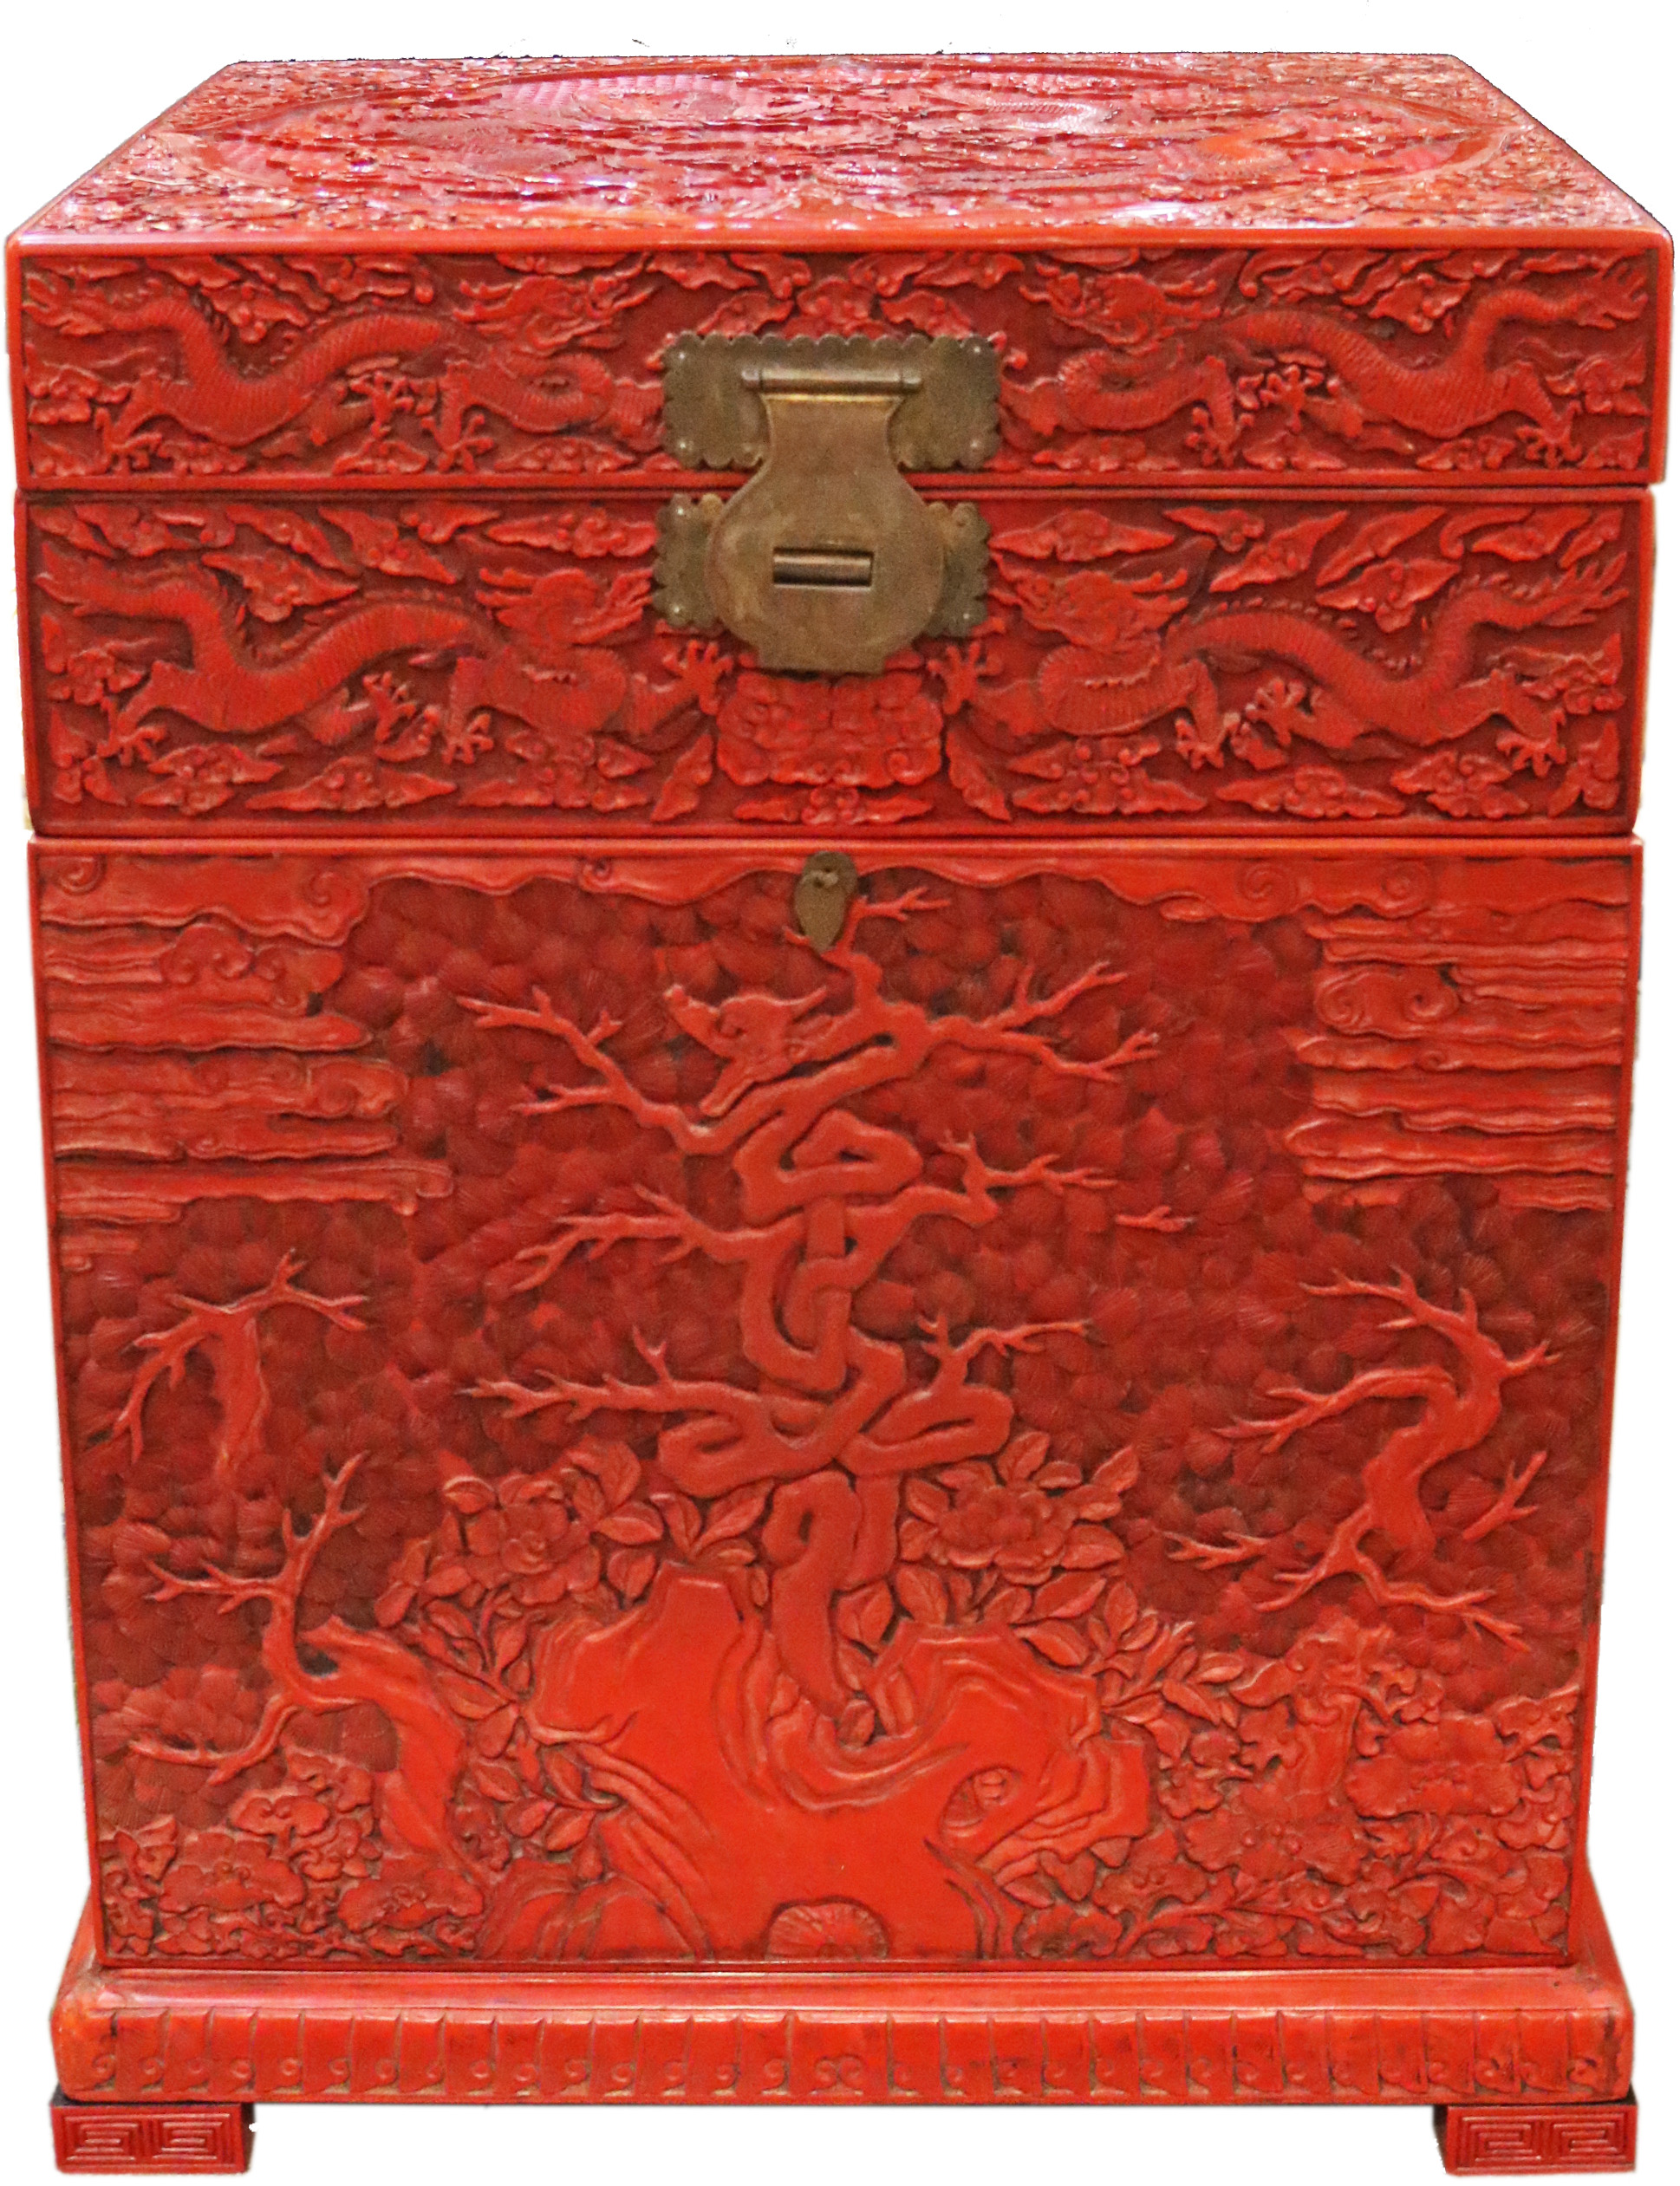 A Vibrant 19th Century Chinese Cinnabar Apothecary Chest No. 4769